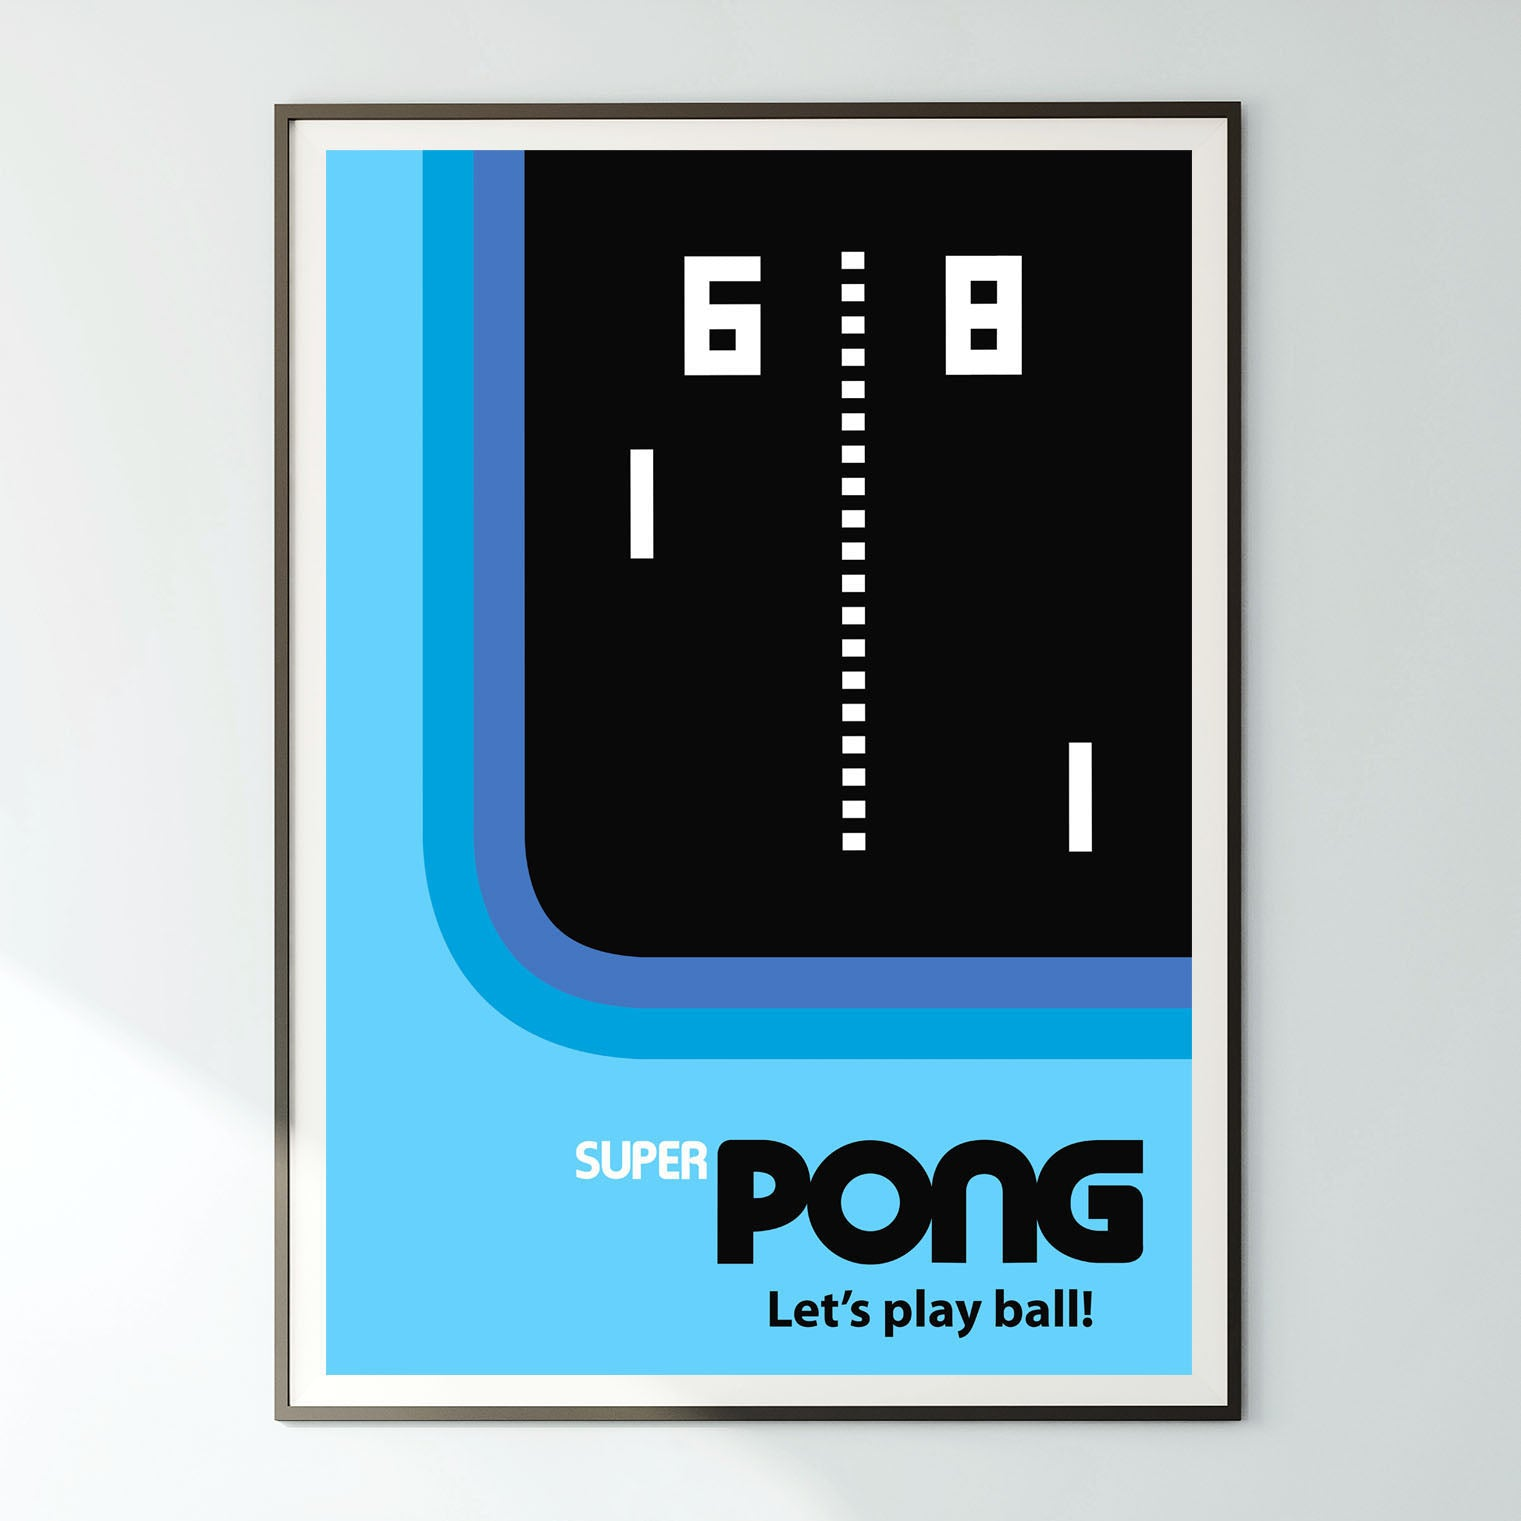 'SUPER PONG! - Let's play ball! retro tennis ping pong blue cyan sports arcade video game gaming gamer graphic art gallery print - 'Unframed'